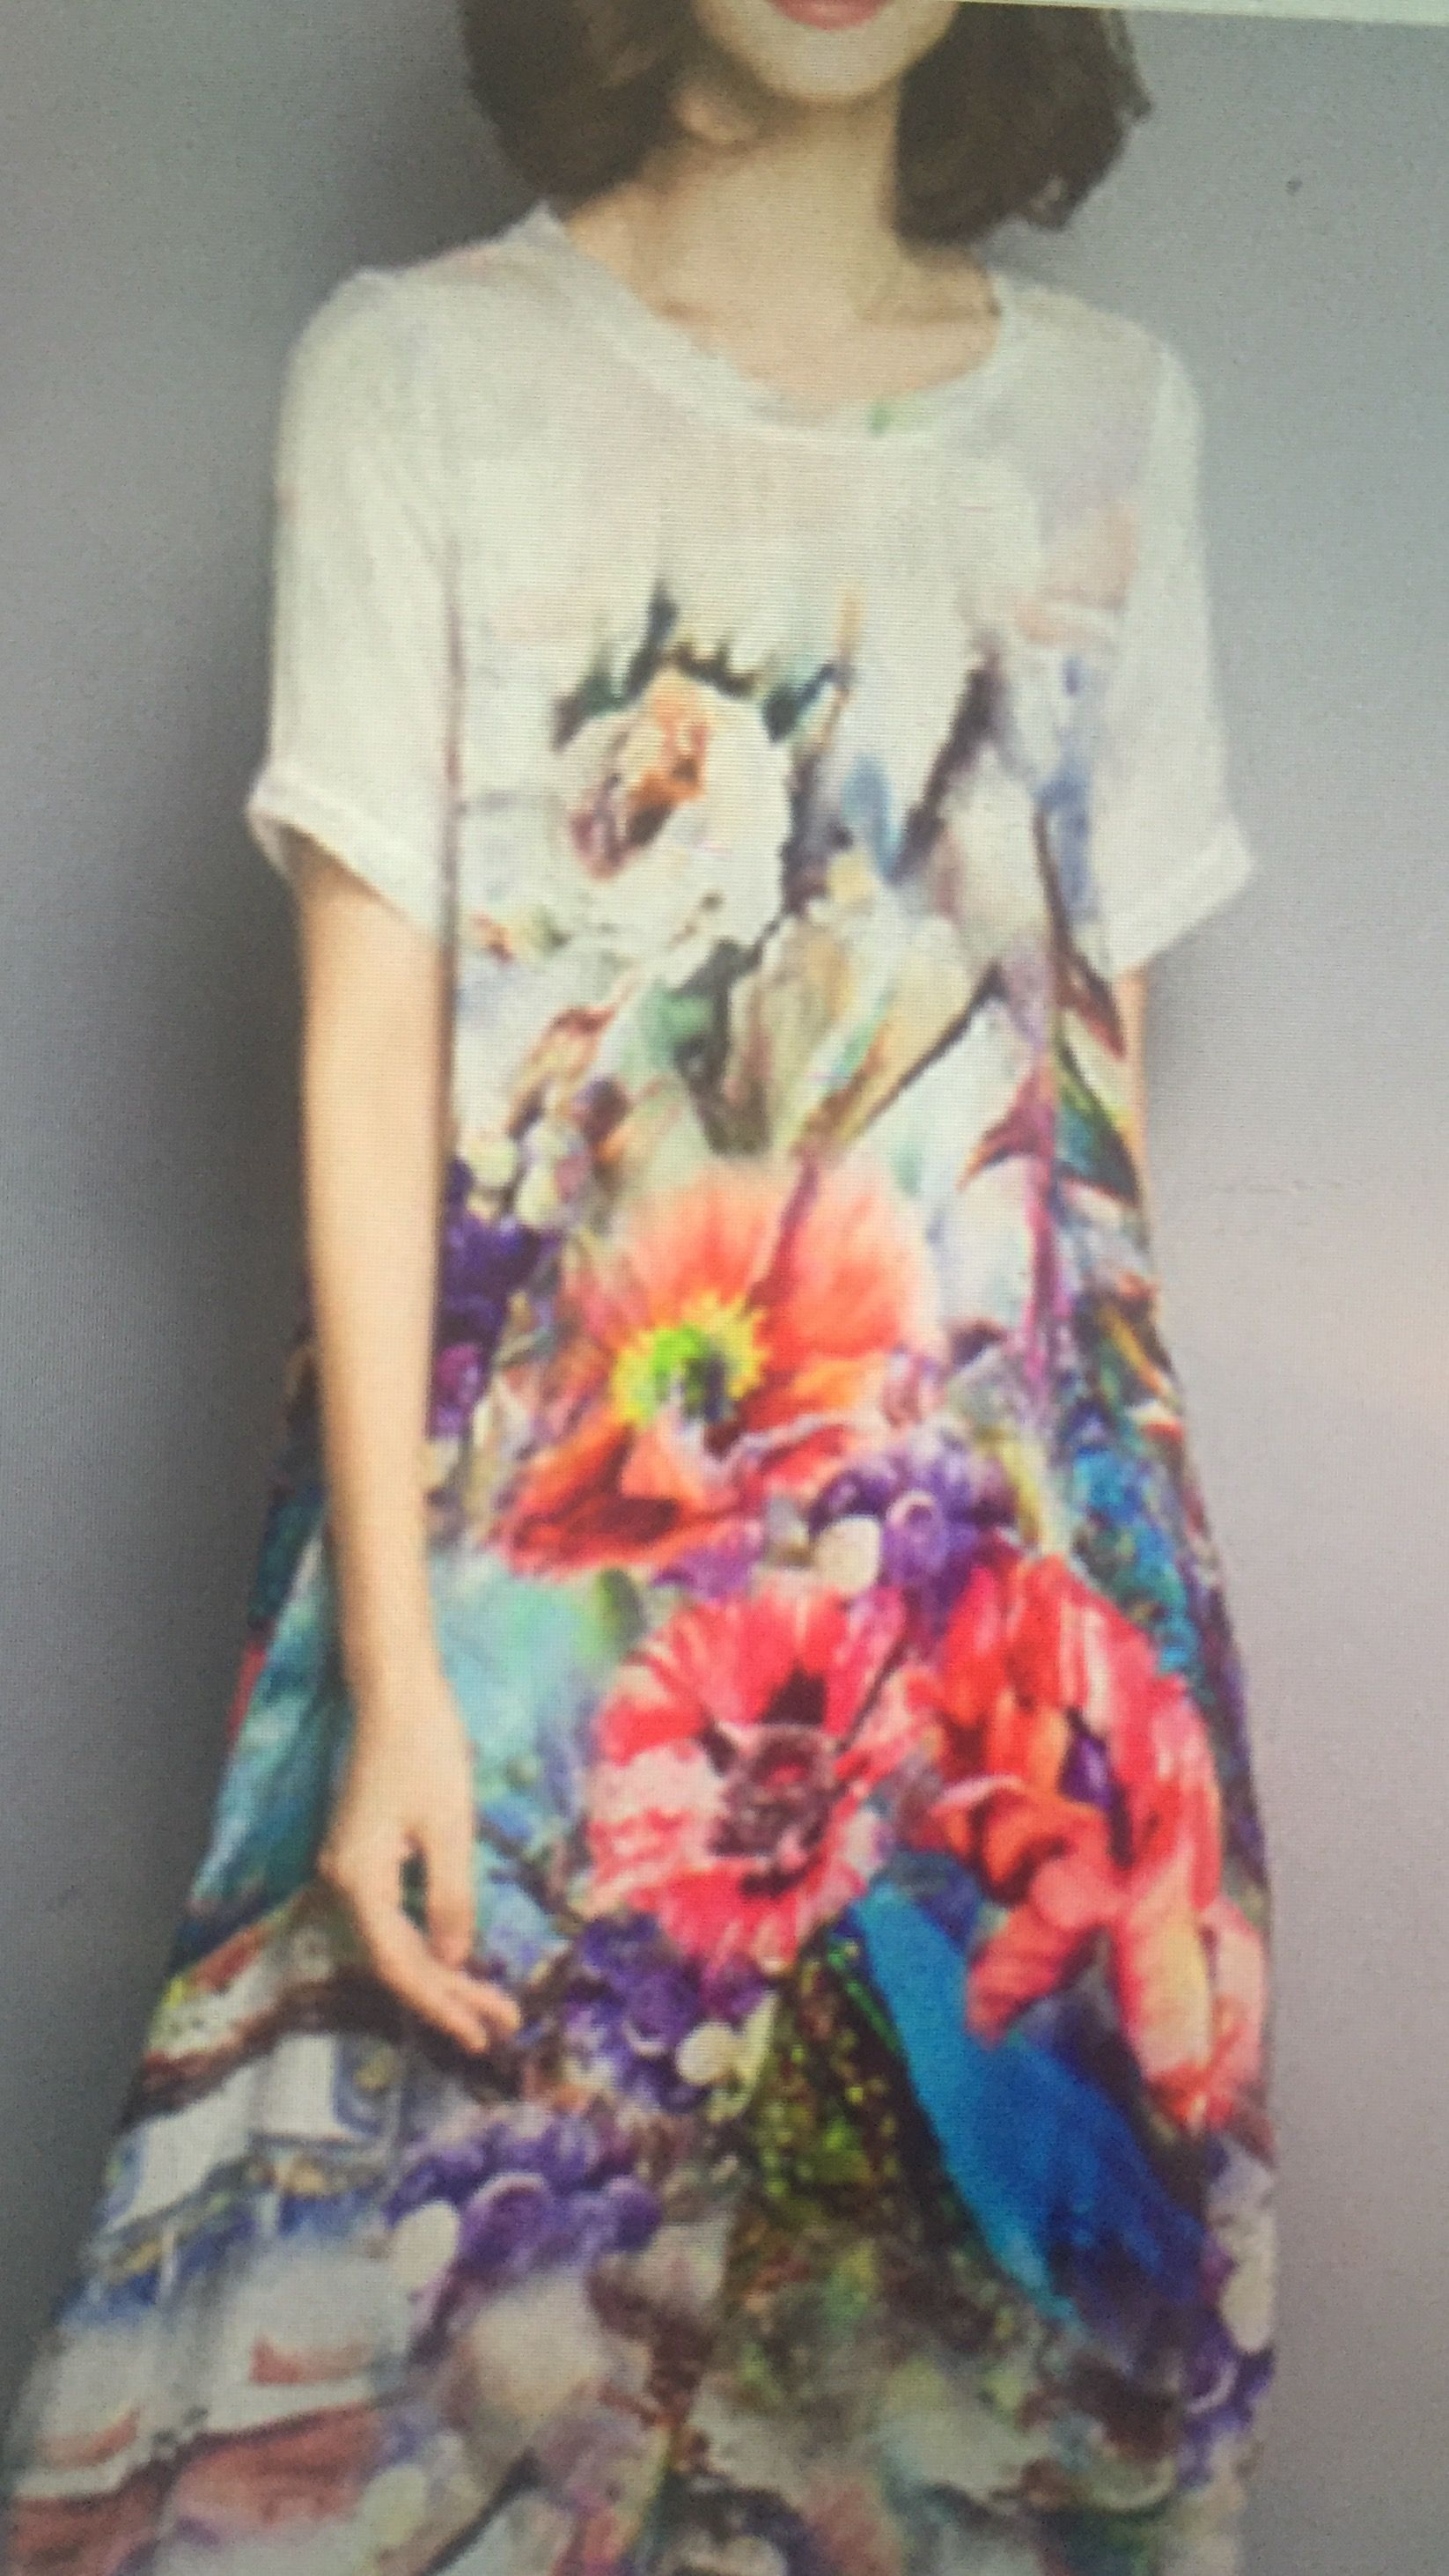 The choice of a fantastic fabric can elevate a simple dress design